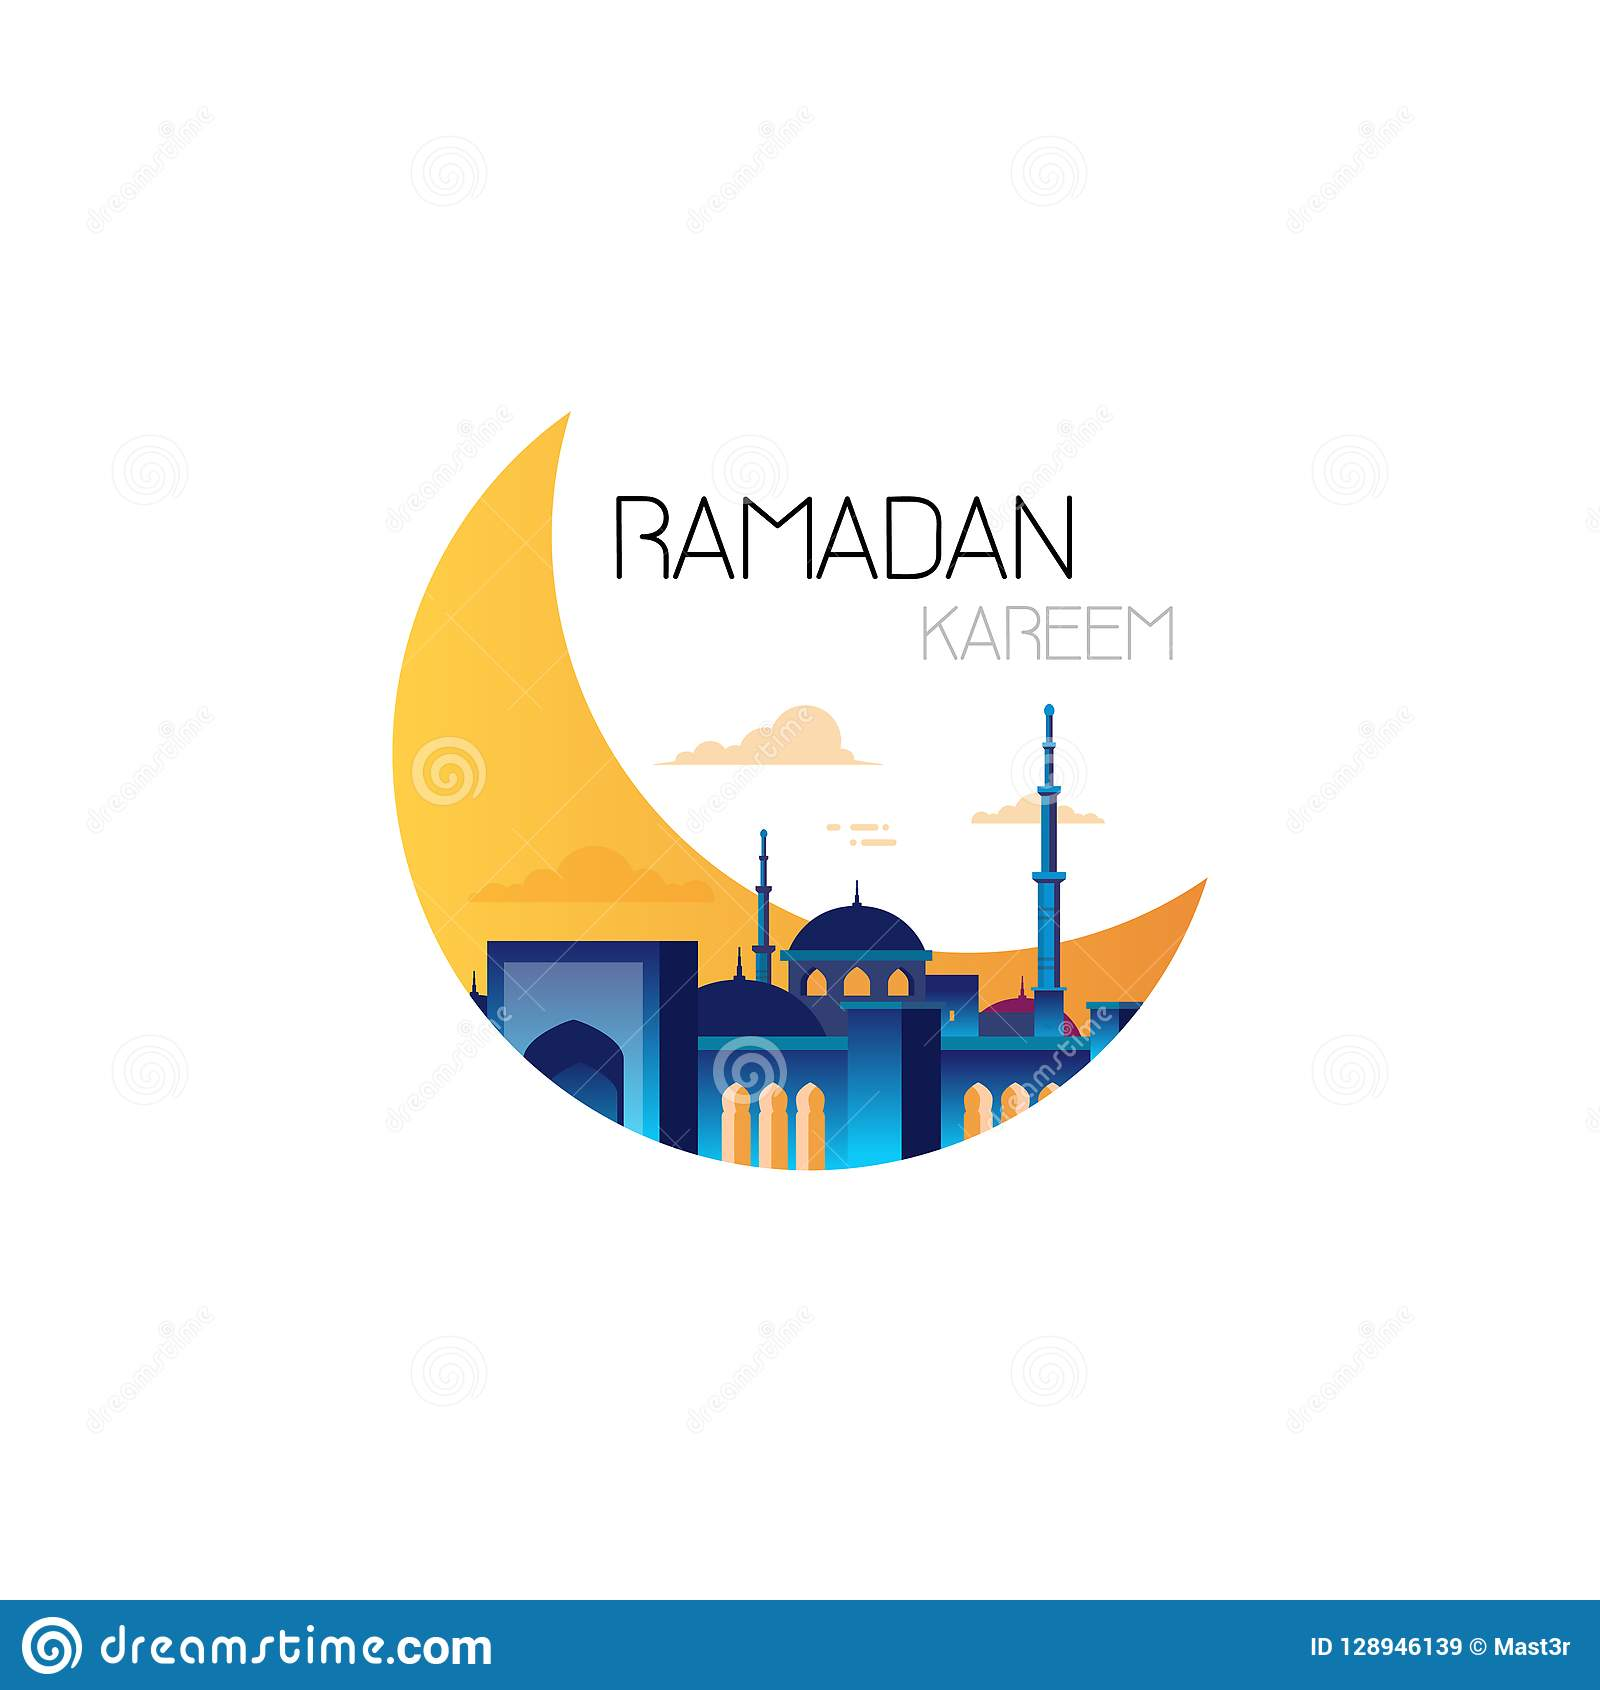 Ramadan kareem muslim religion holy month flat greeting card template on white background